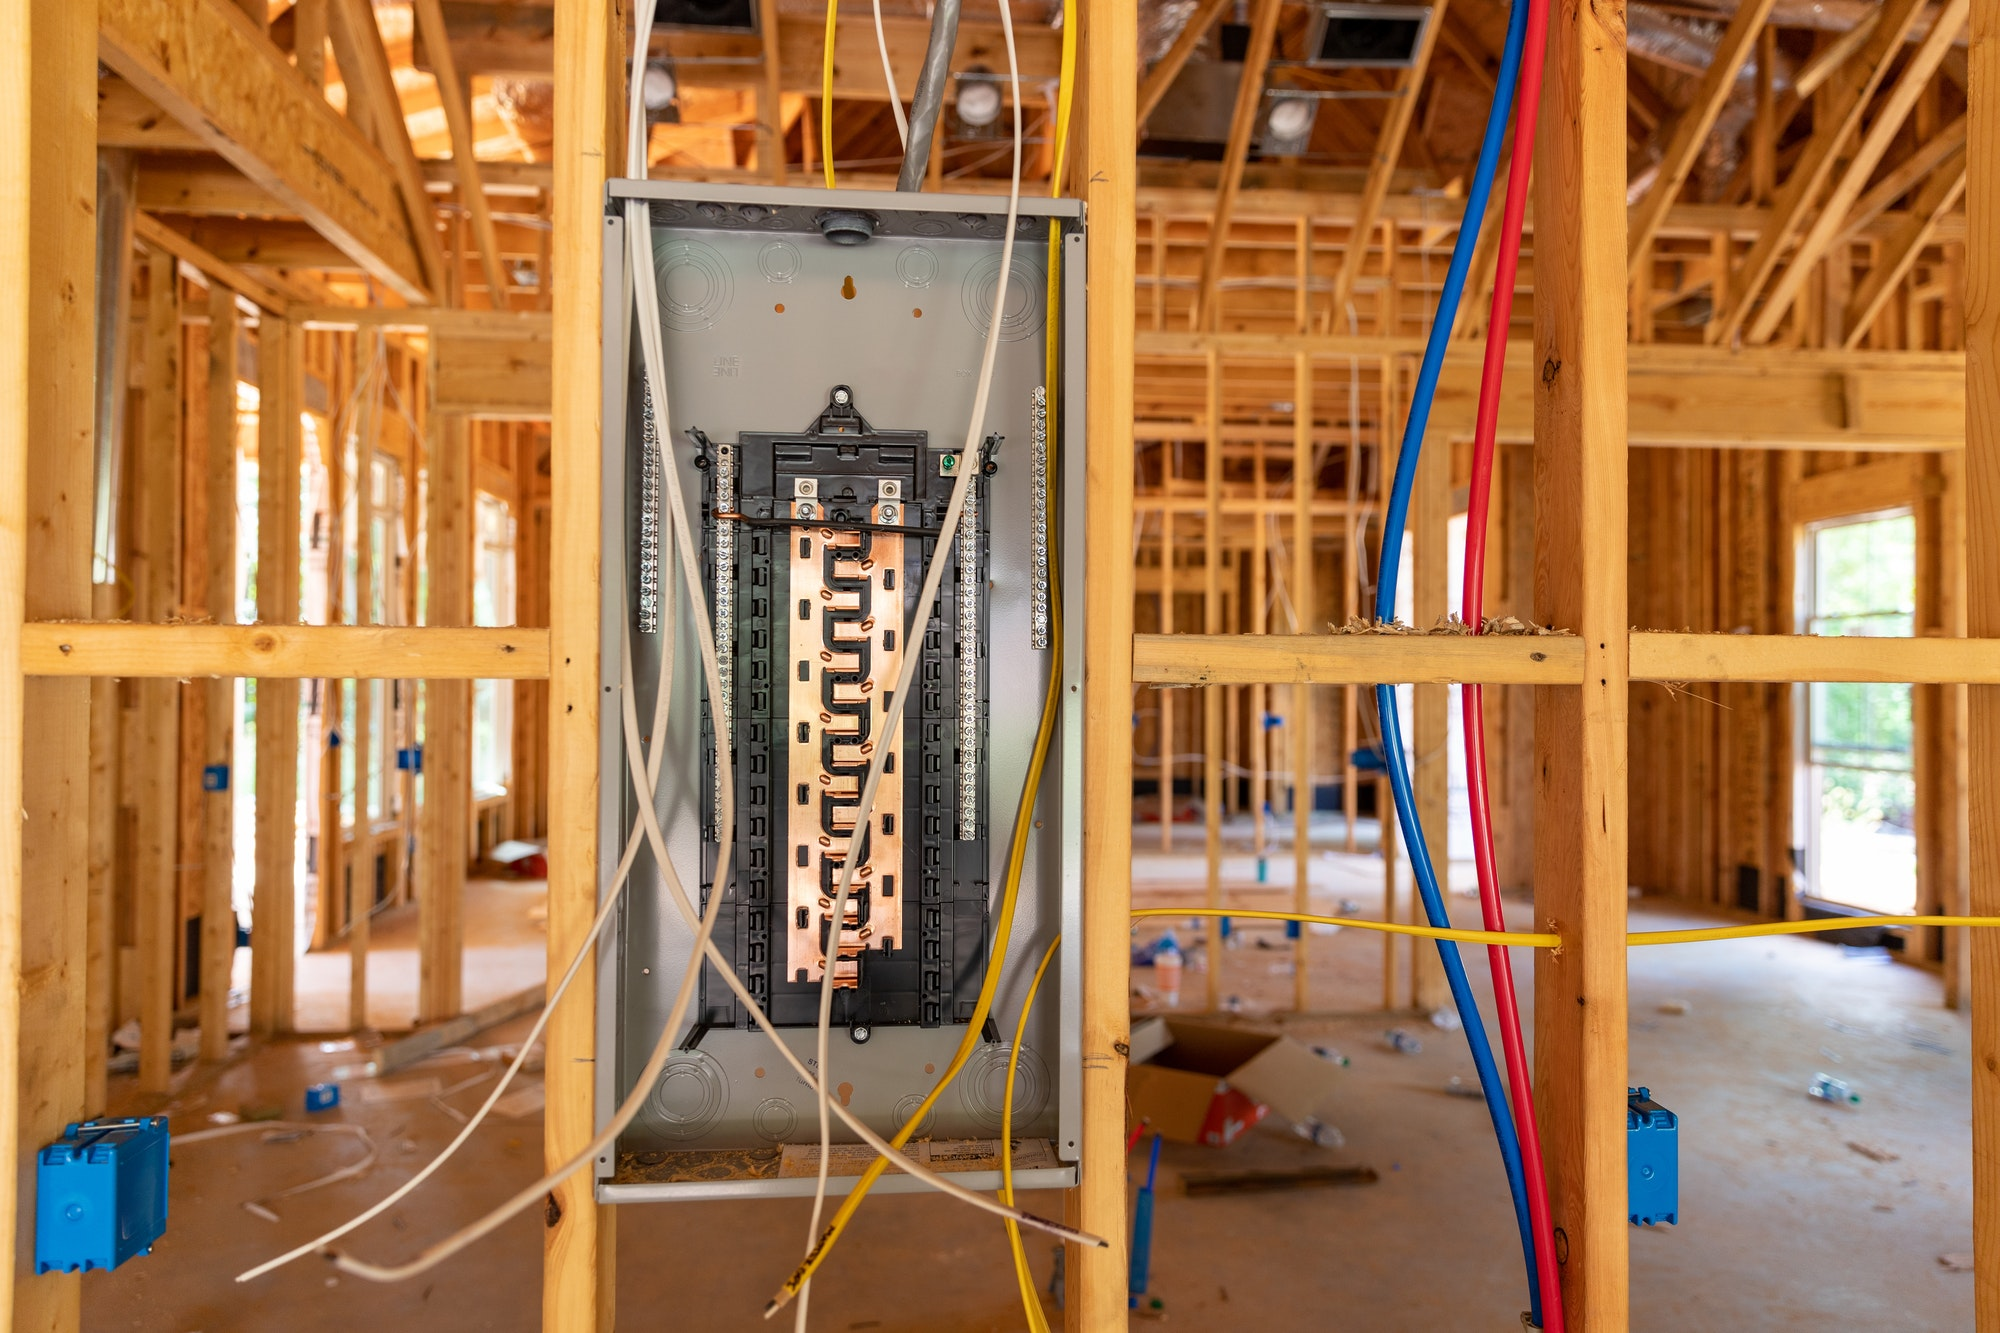 New Circuit Breaker panel in new home construction